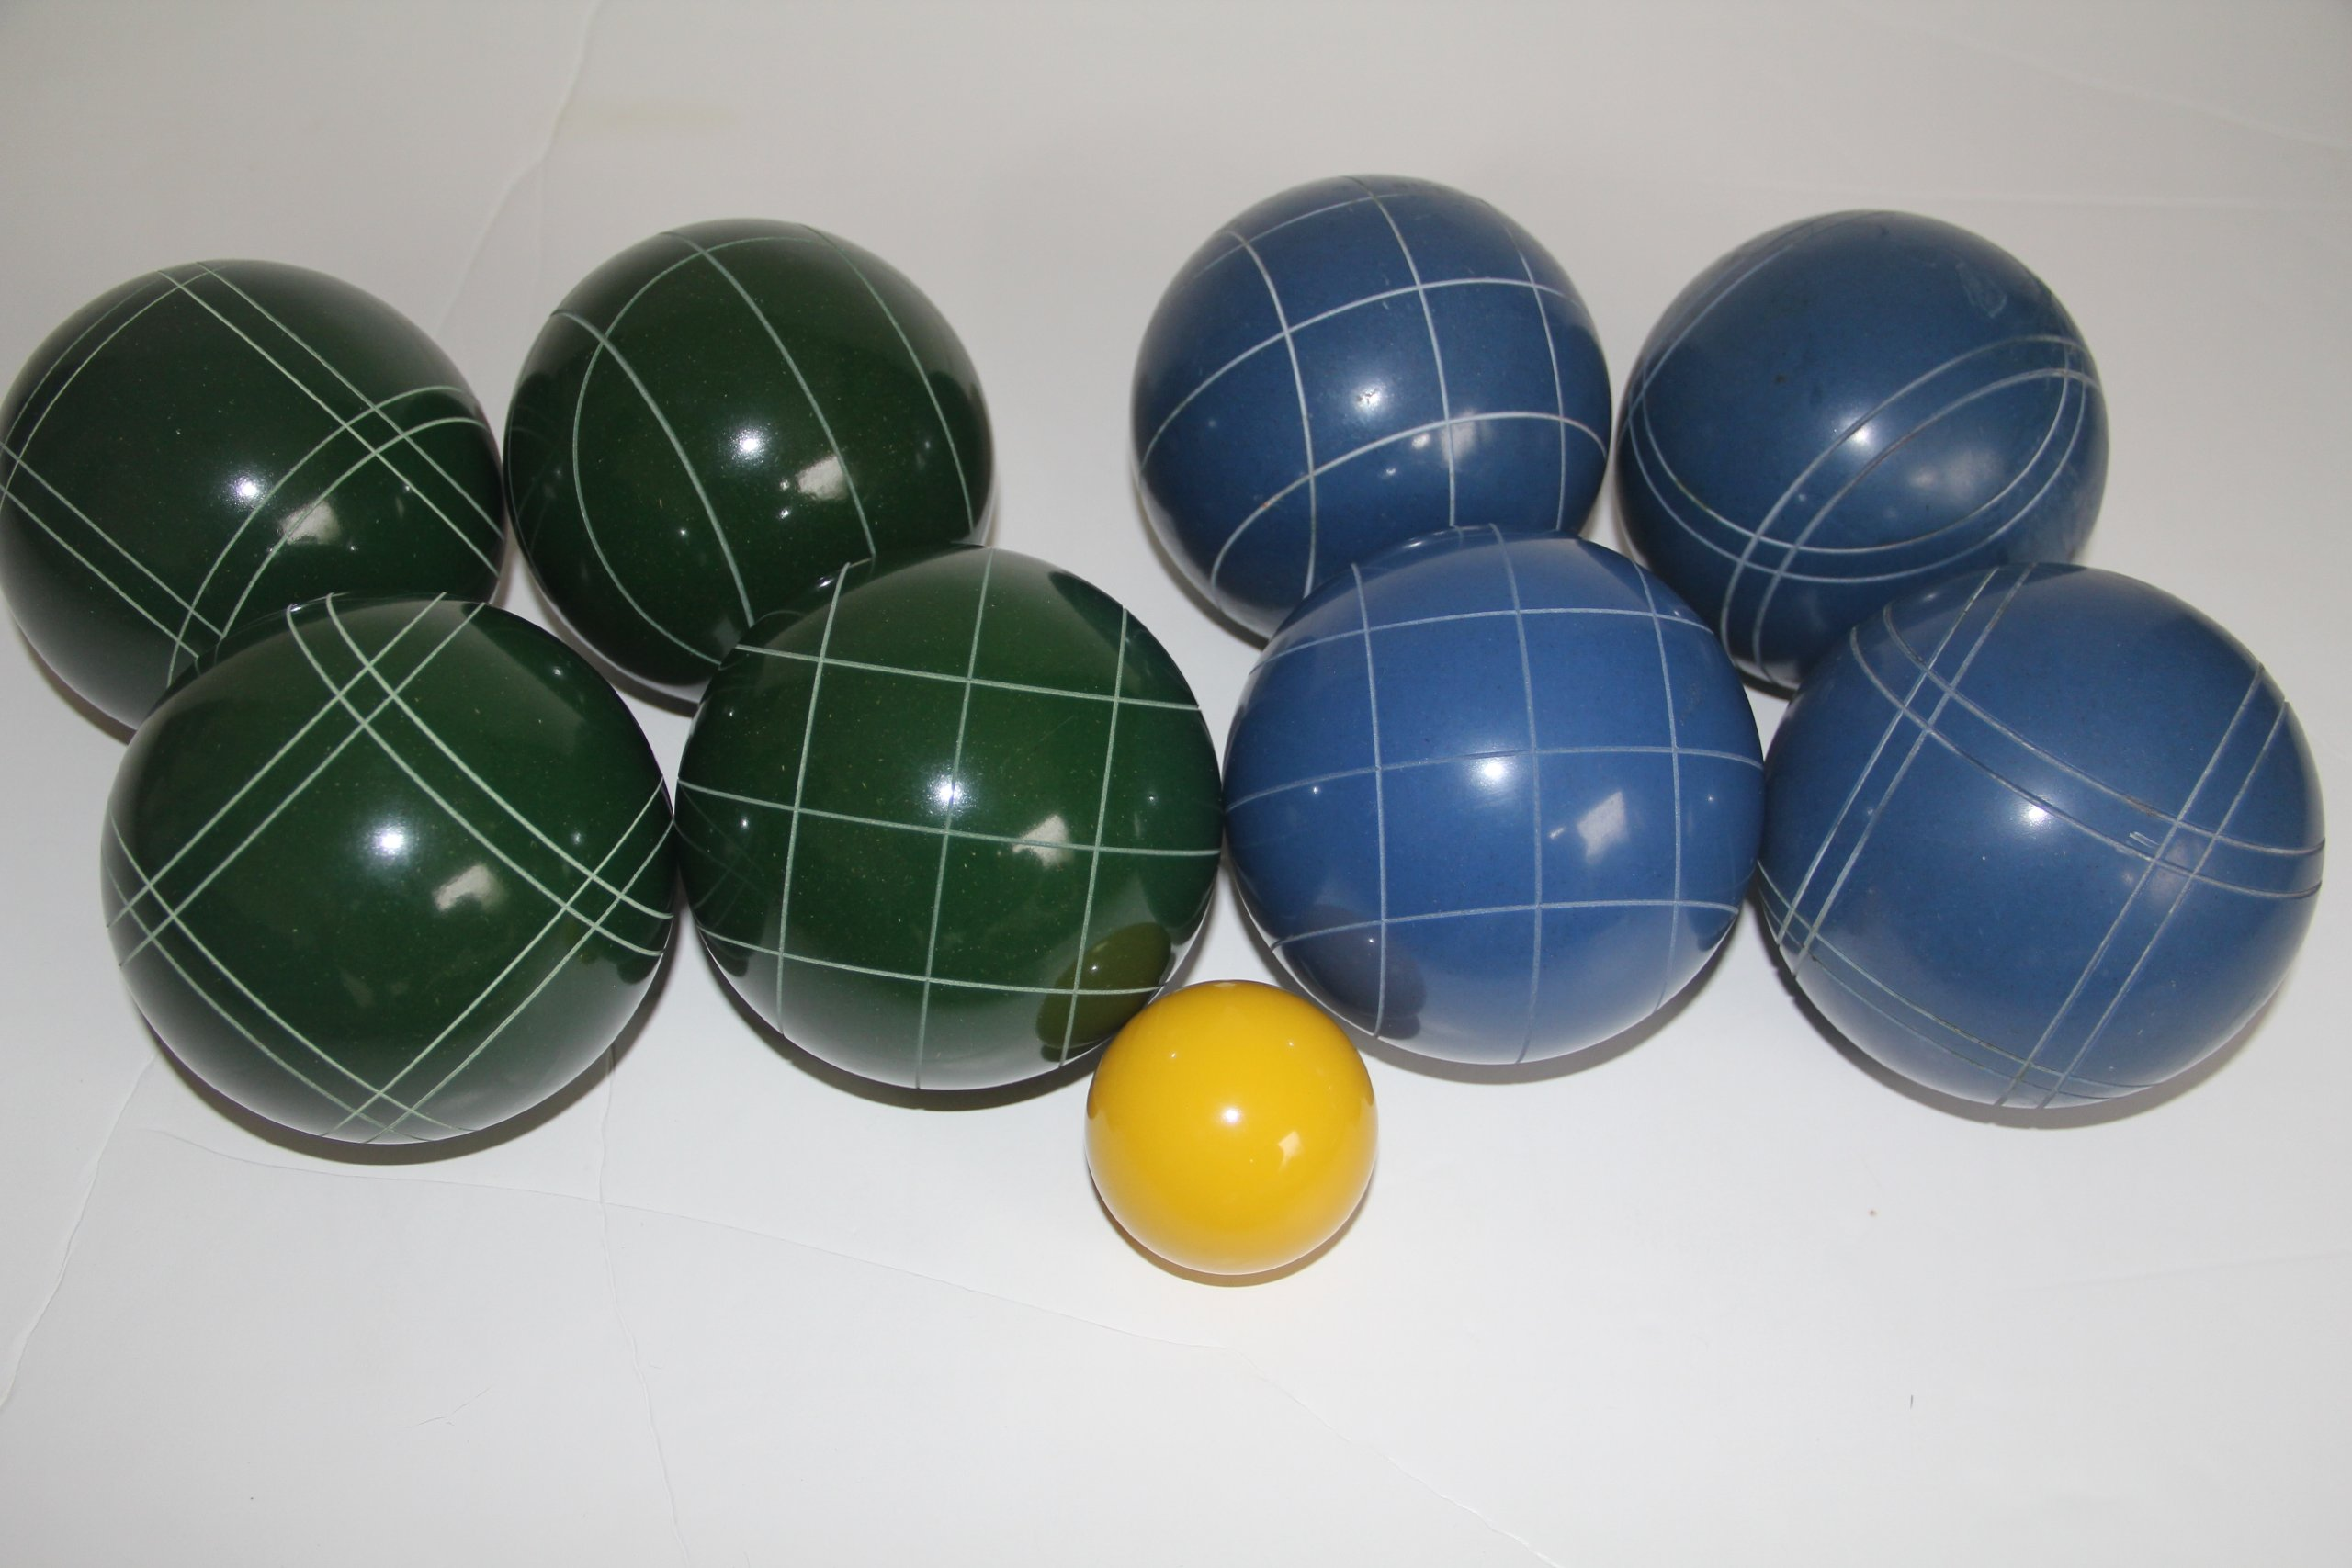 Premium Quality EPCO Tournament Set - 110mm Blue and Green Bocce Balls - NO BAG OPTION [Toy] by Epco